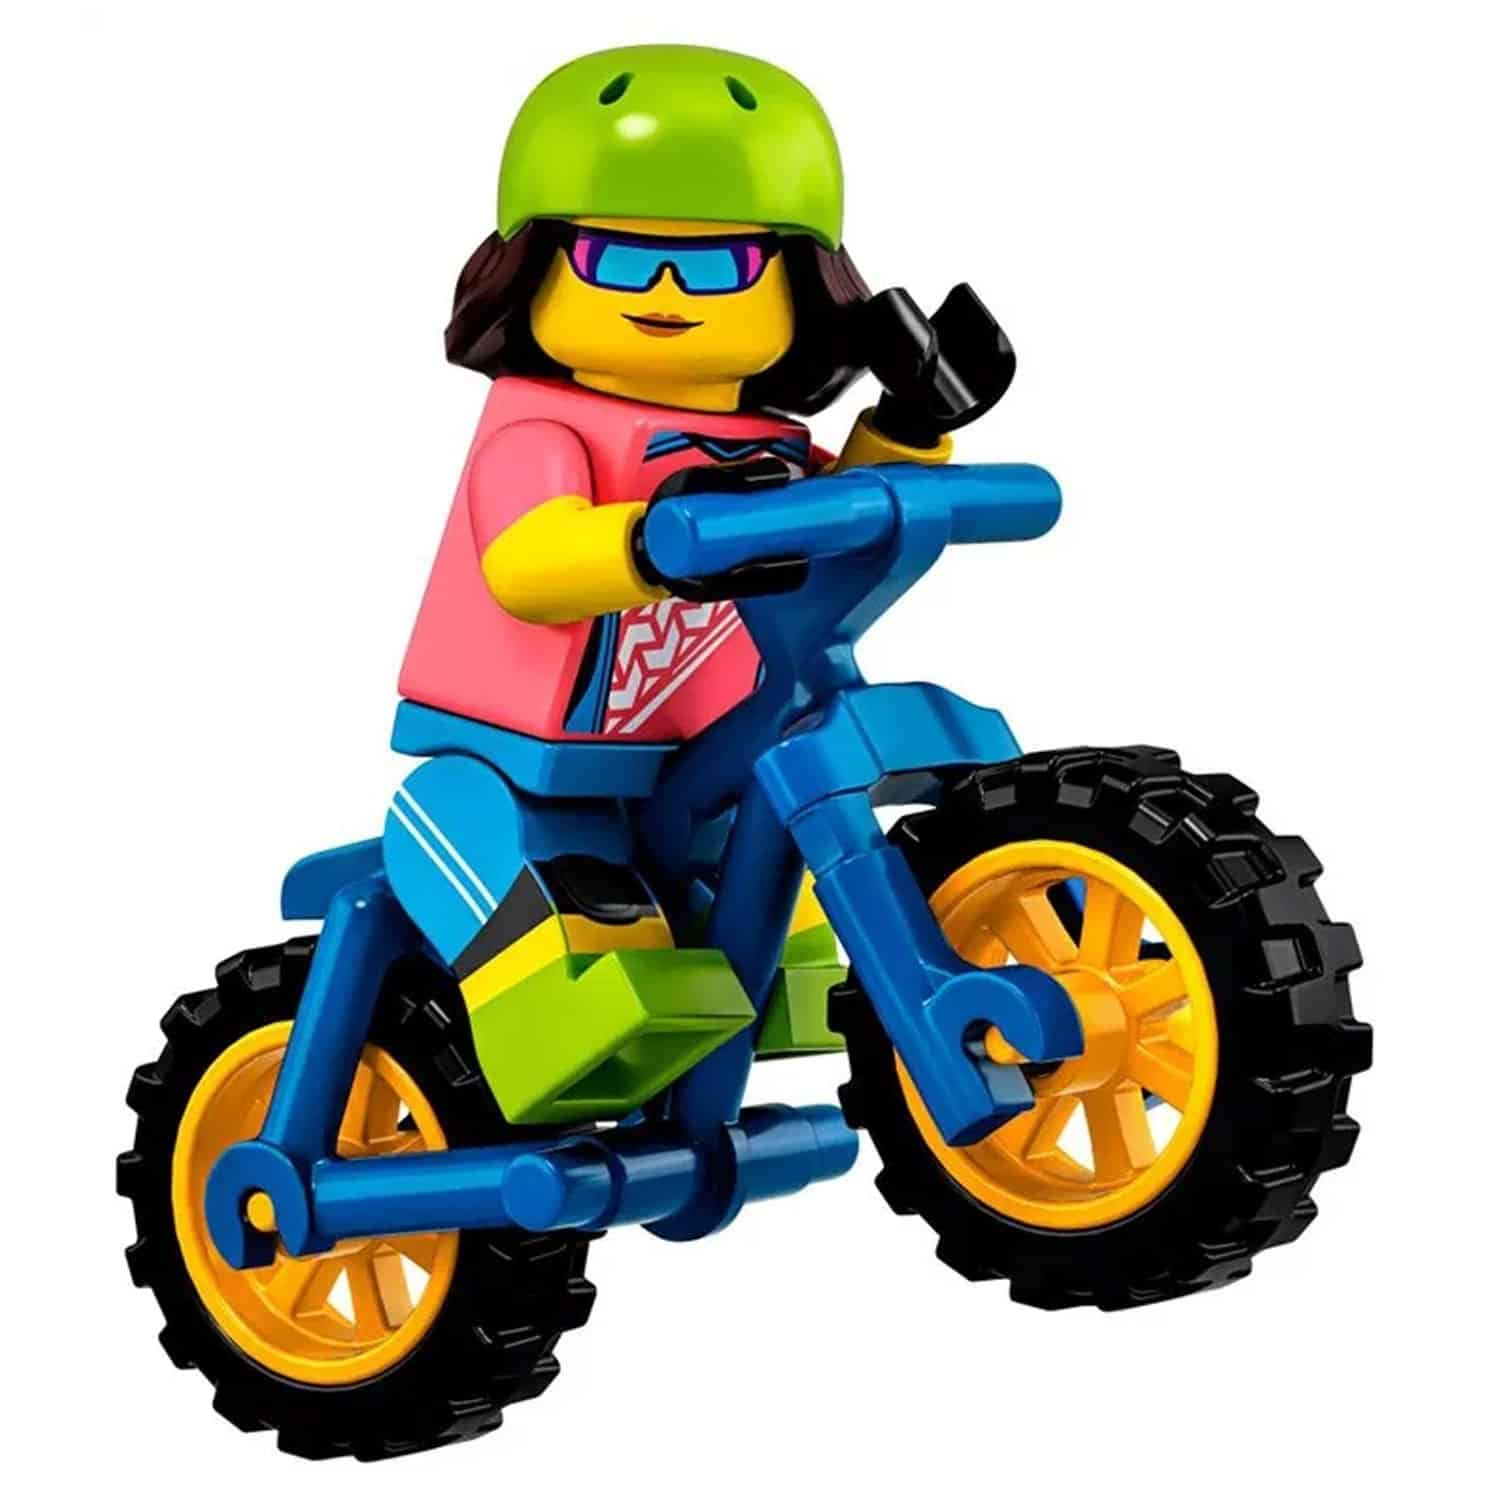 LEGO Biker Girl Minifigure with BMX Bike – Series 19 CMF